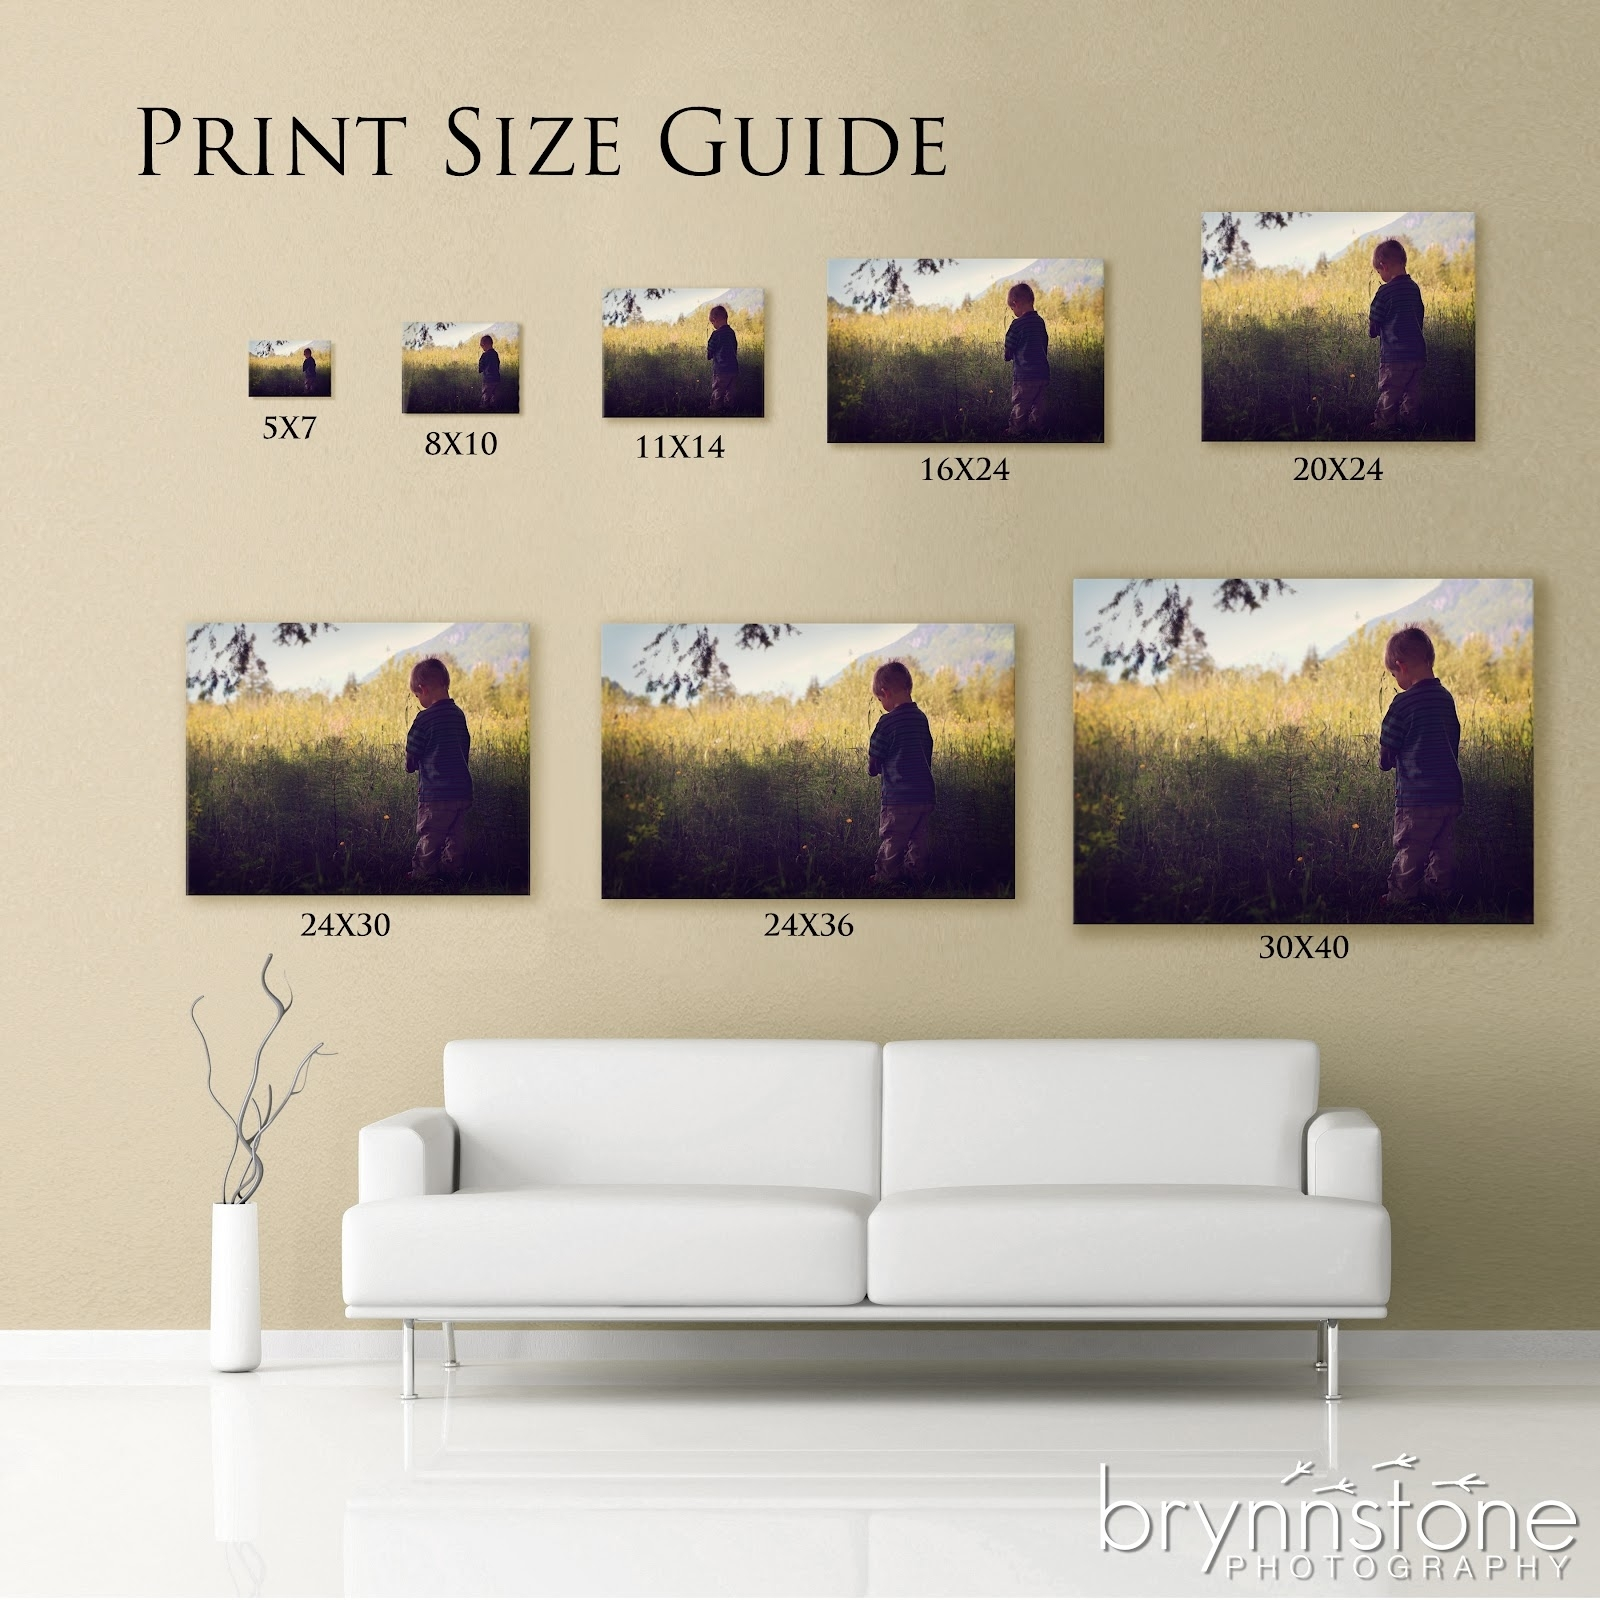 Think An 8x10 Is A Big Enough Print? They're Not As Big As You For 2017 Photography Canvas Wall Art (View 8 of 15)